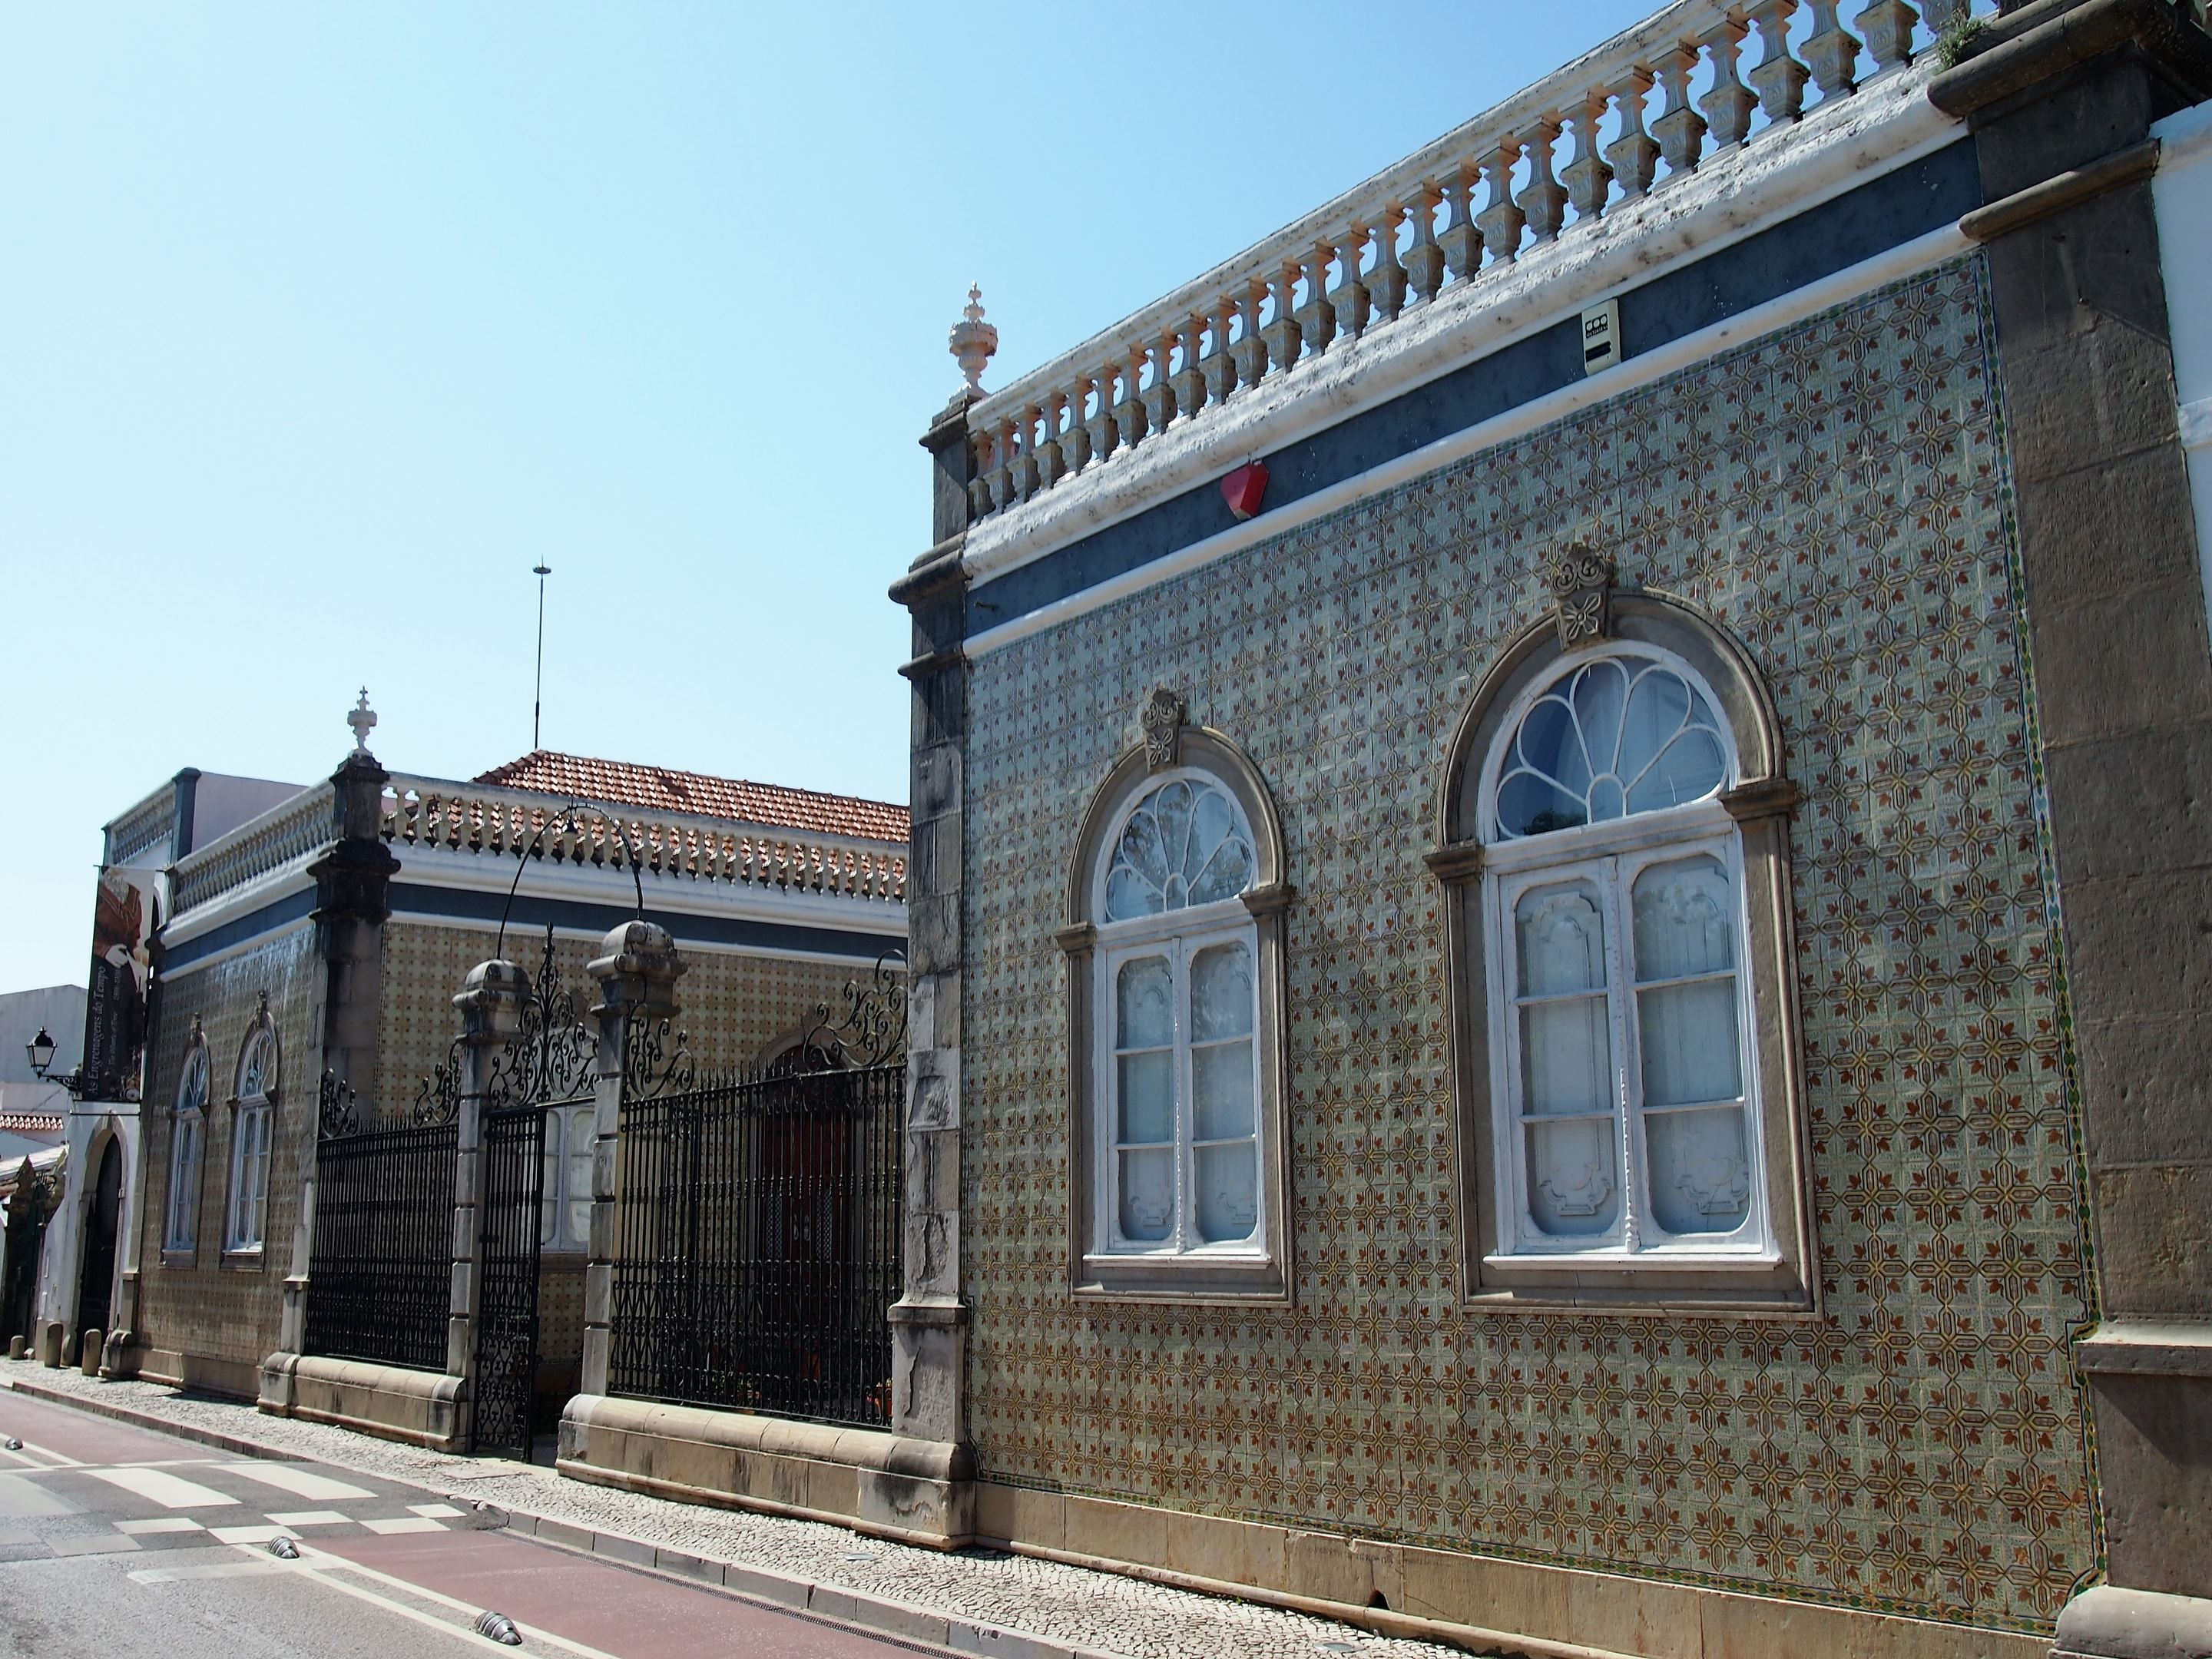 The ornate building which houses the Algarve Costume Museum in São Brás de Alportel